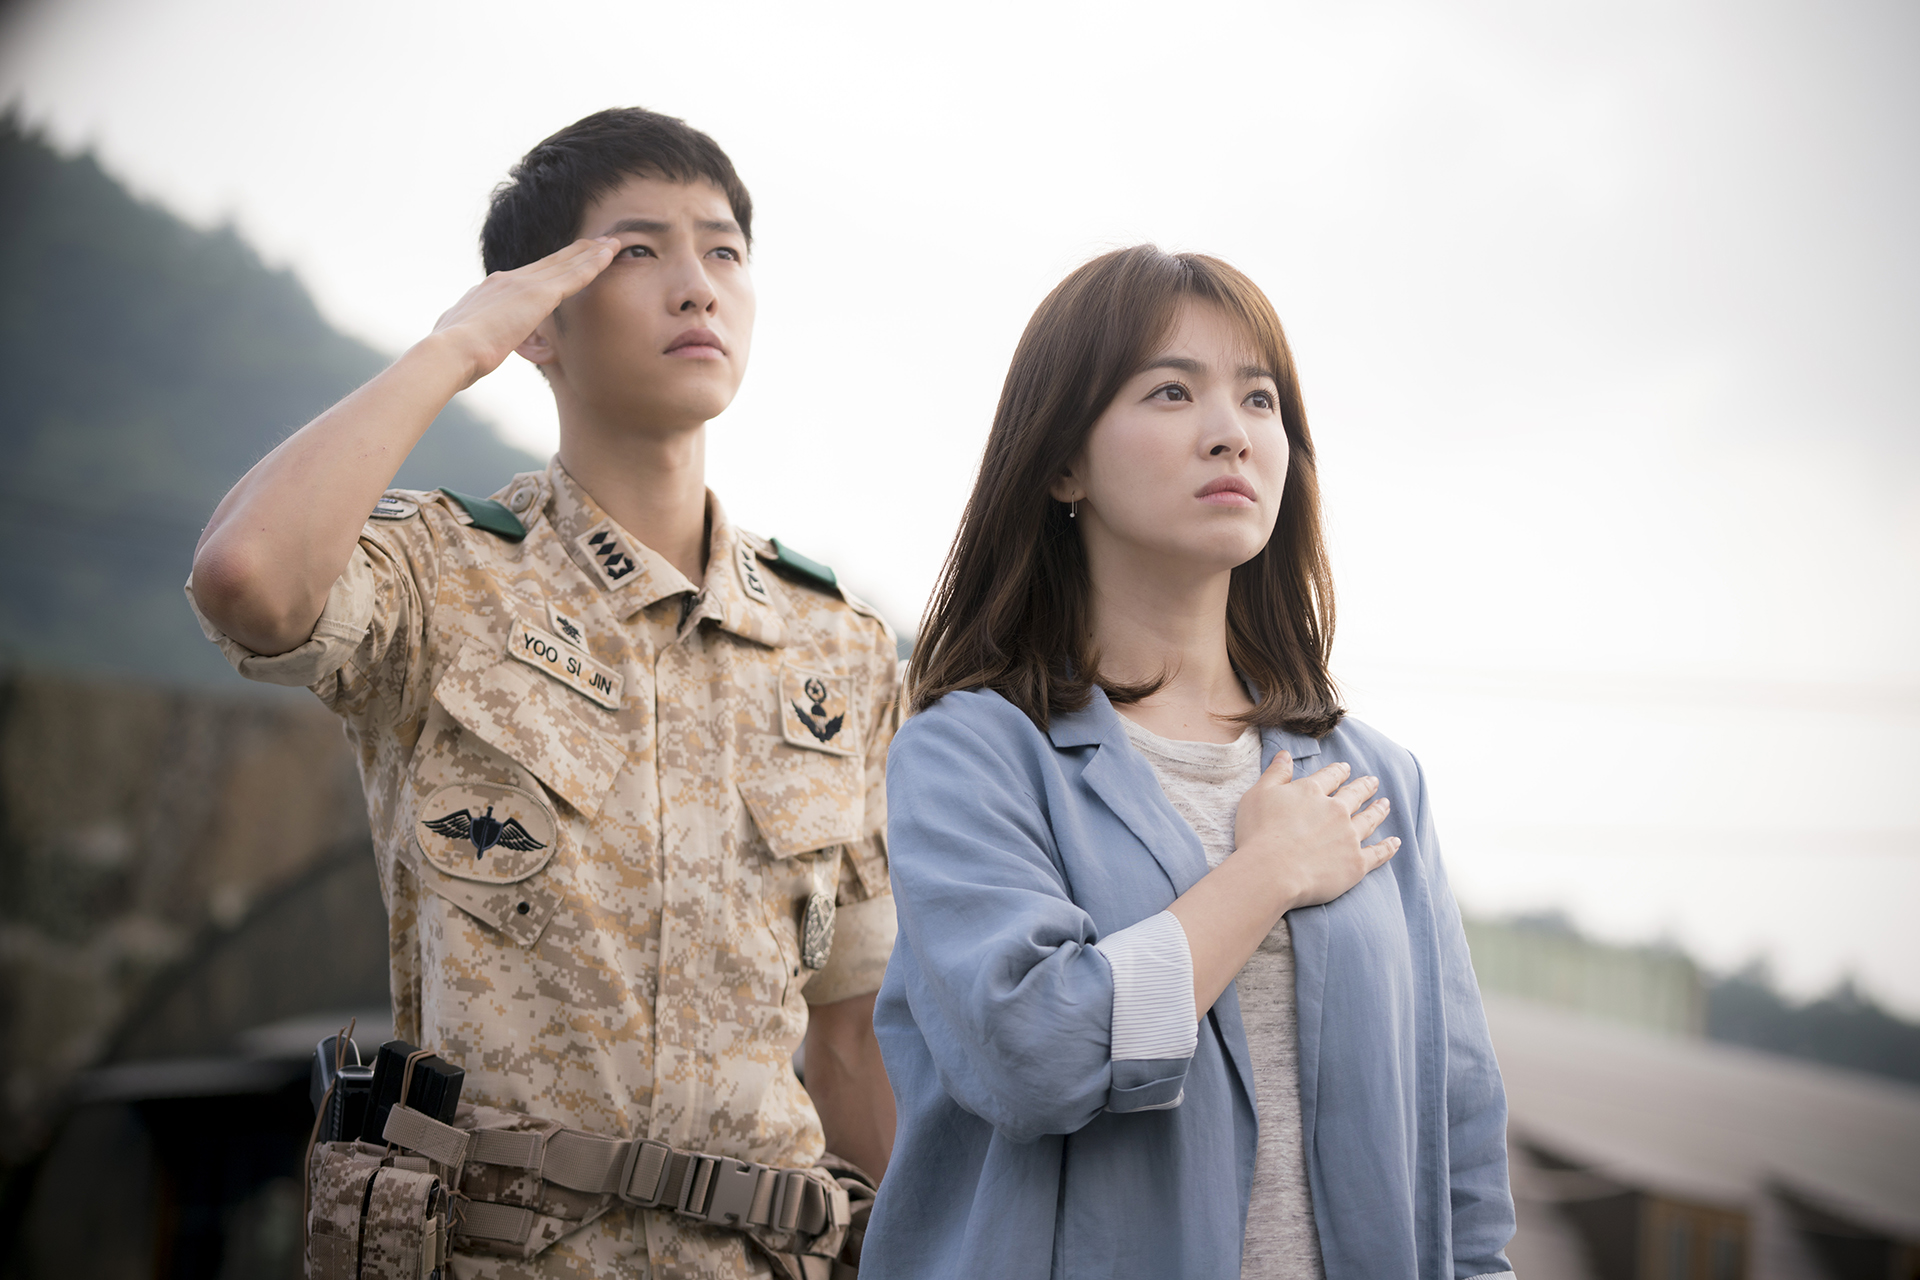 You Know The Descendants Of The Sun Craze Is Getting Out